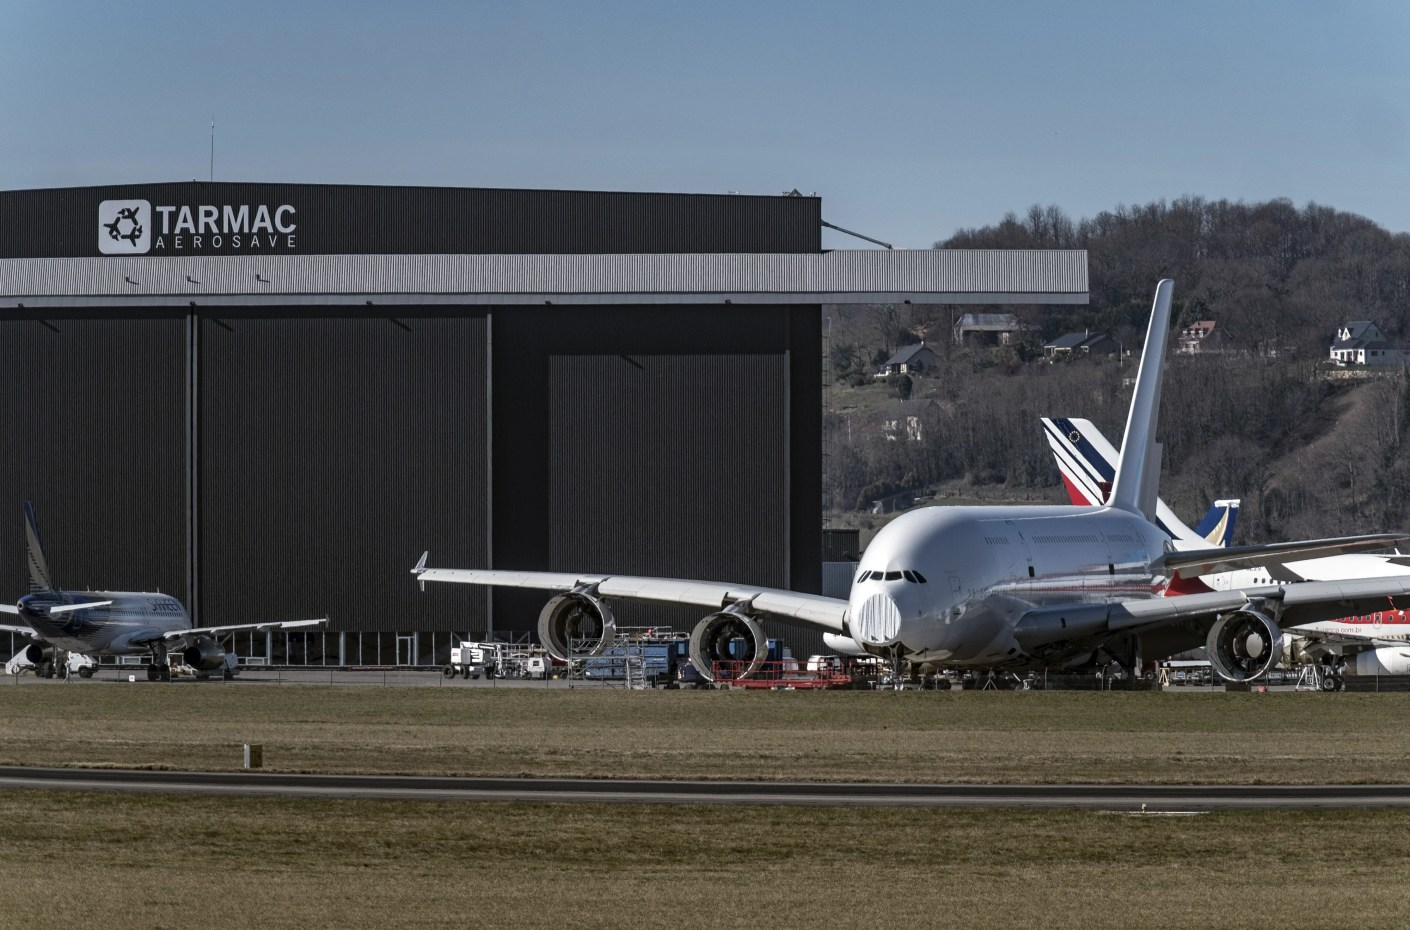 An Airbus A380 on the ramp at Lourdes Airport in France (Image by Balint Porneczi/Bloomberg via Getty Image)